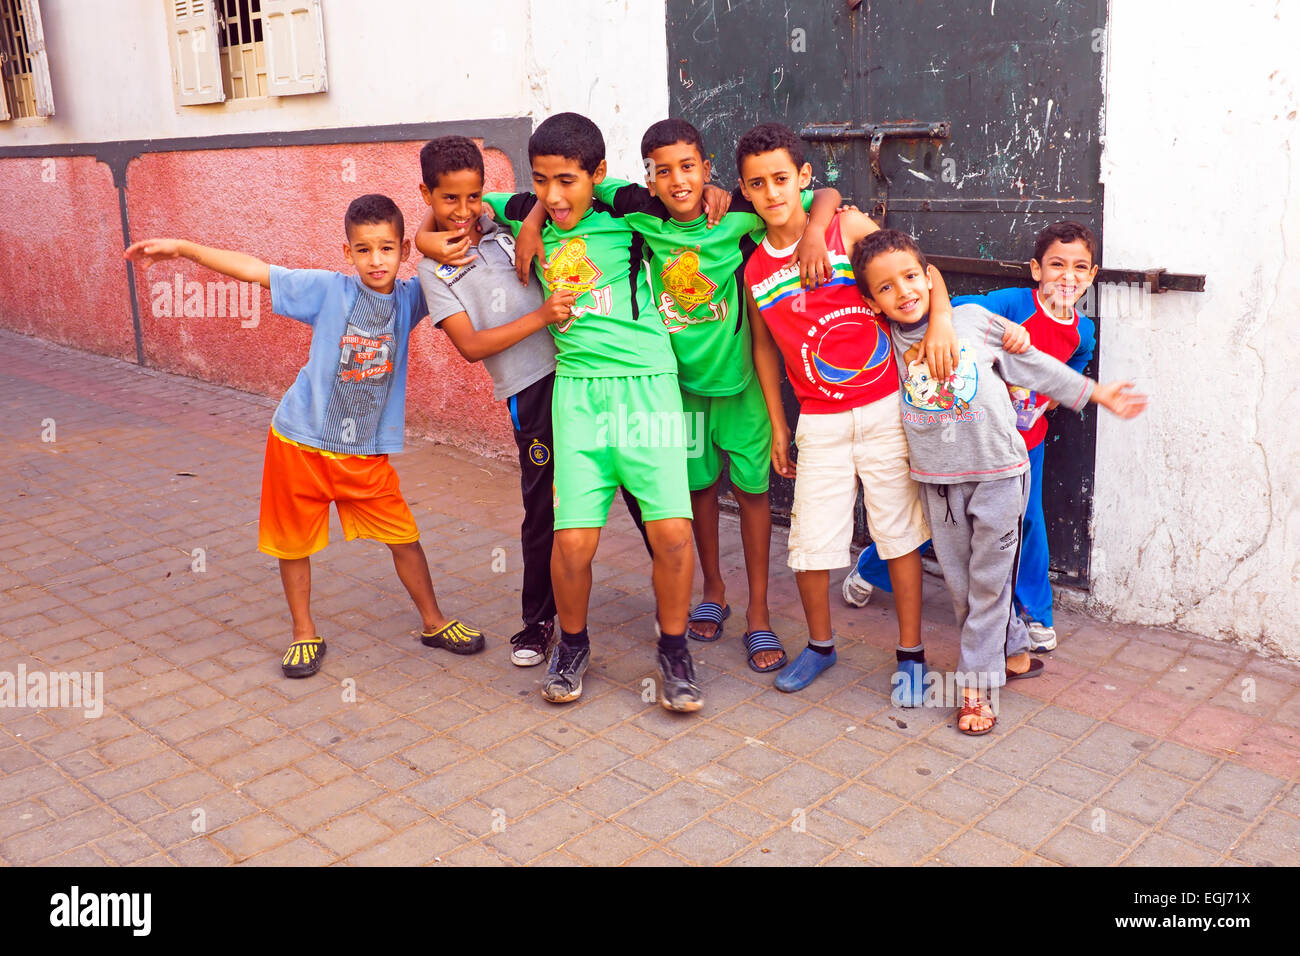 RABAT, MOROCCO - October 15 2013 : Kids in the streets on Eid al-Adha. - Stock Image